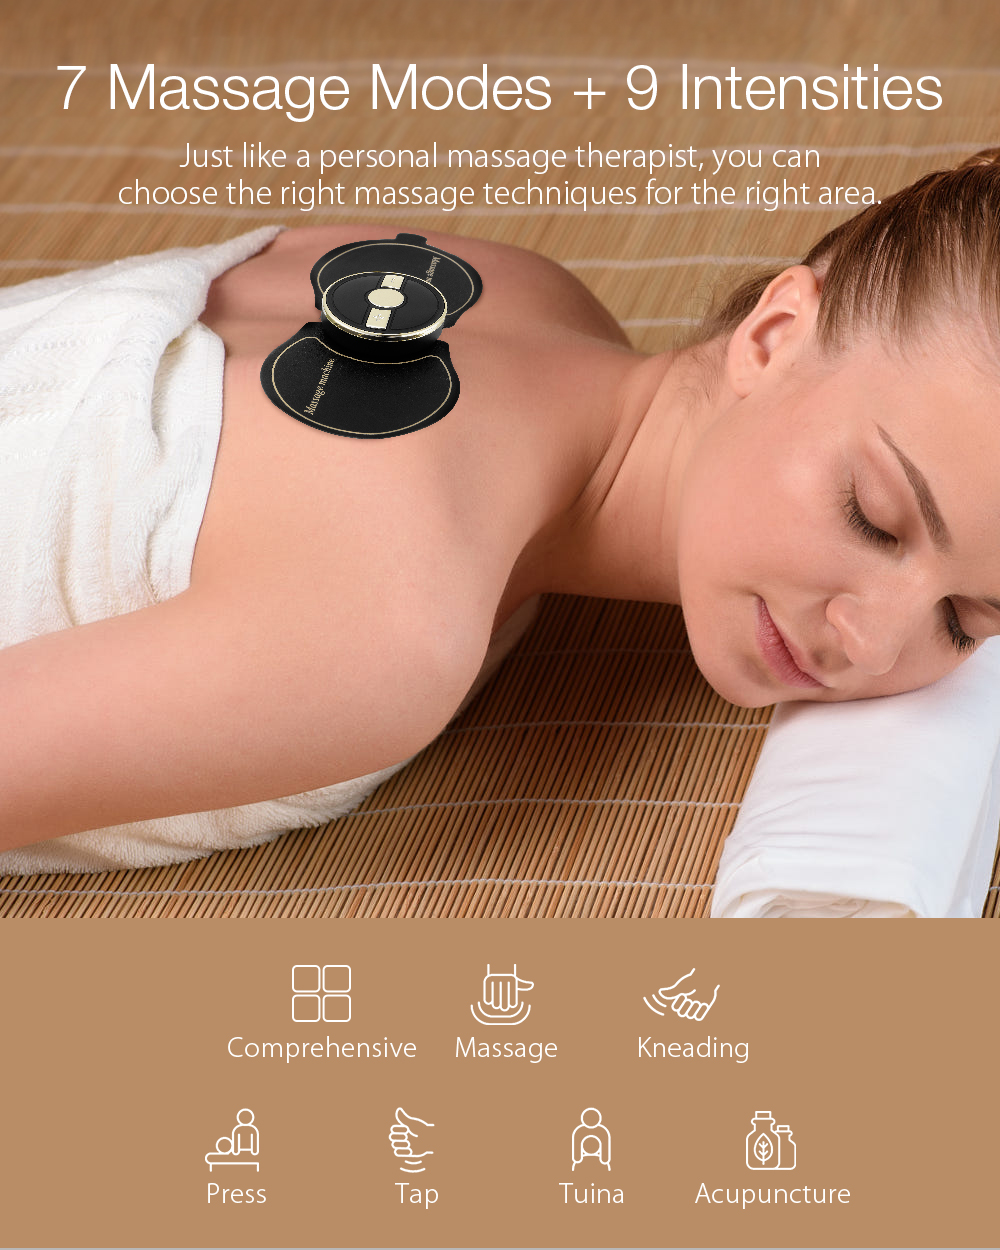 DIGOO DG-PM04 Gold Frame 6 Modes Electronic High-Frequency Pulse Massager 9 Gears Intensity Adjustment Electrode Pad